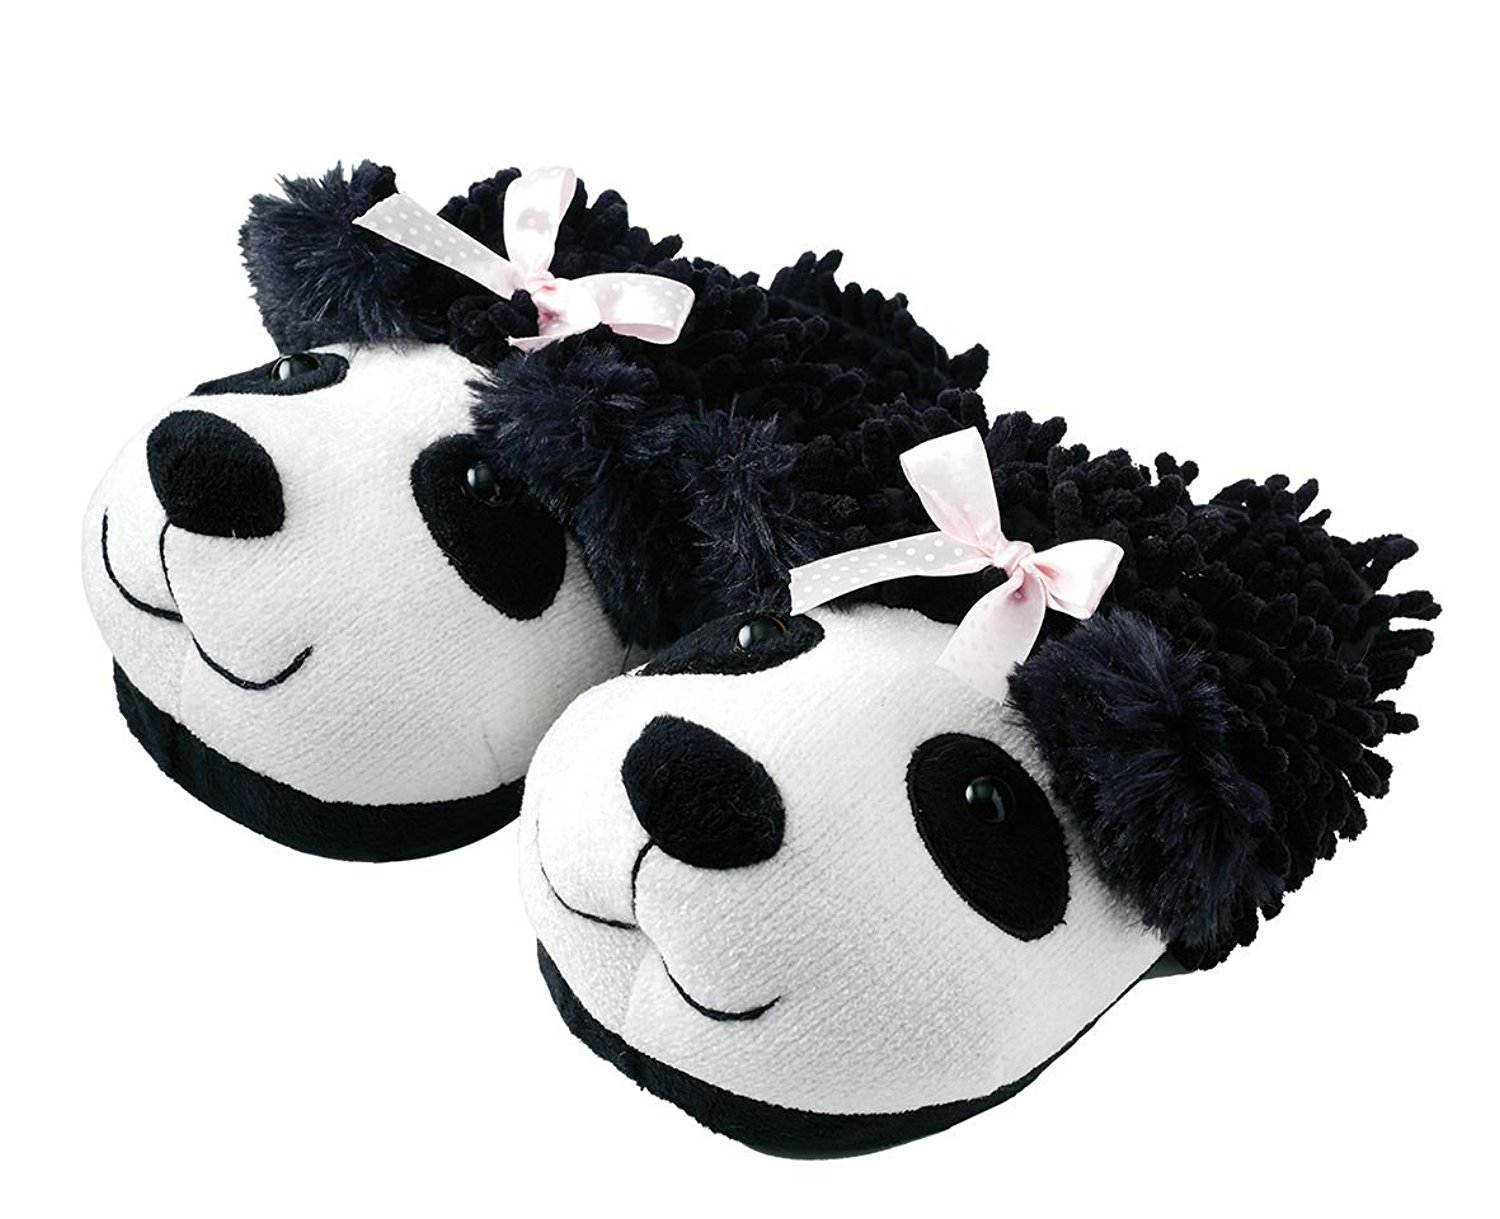 988d8df2f196f Get Quotations · Animal World - Panda Fuzzy Friends Unisex Adult Size  Slippers